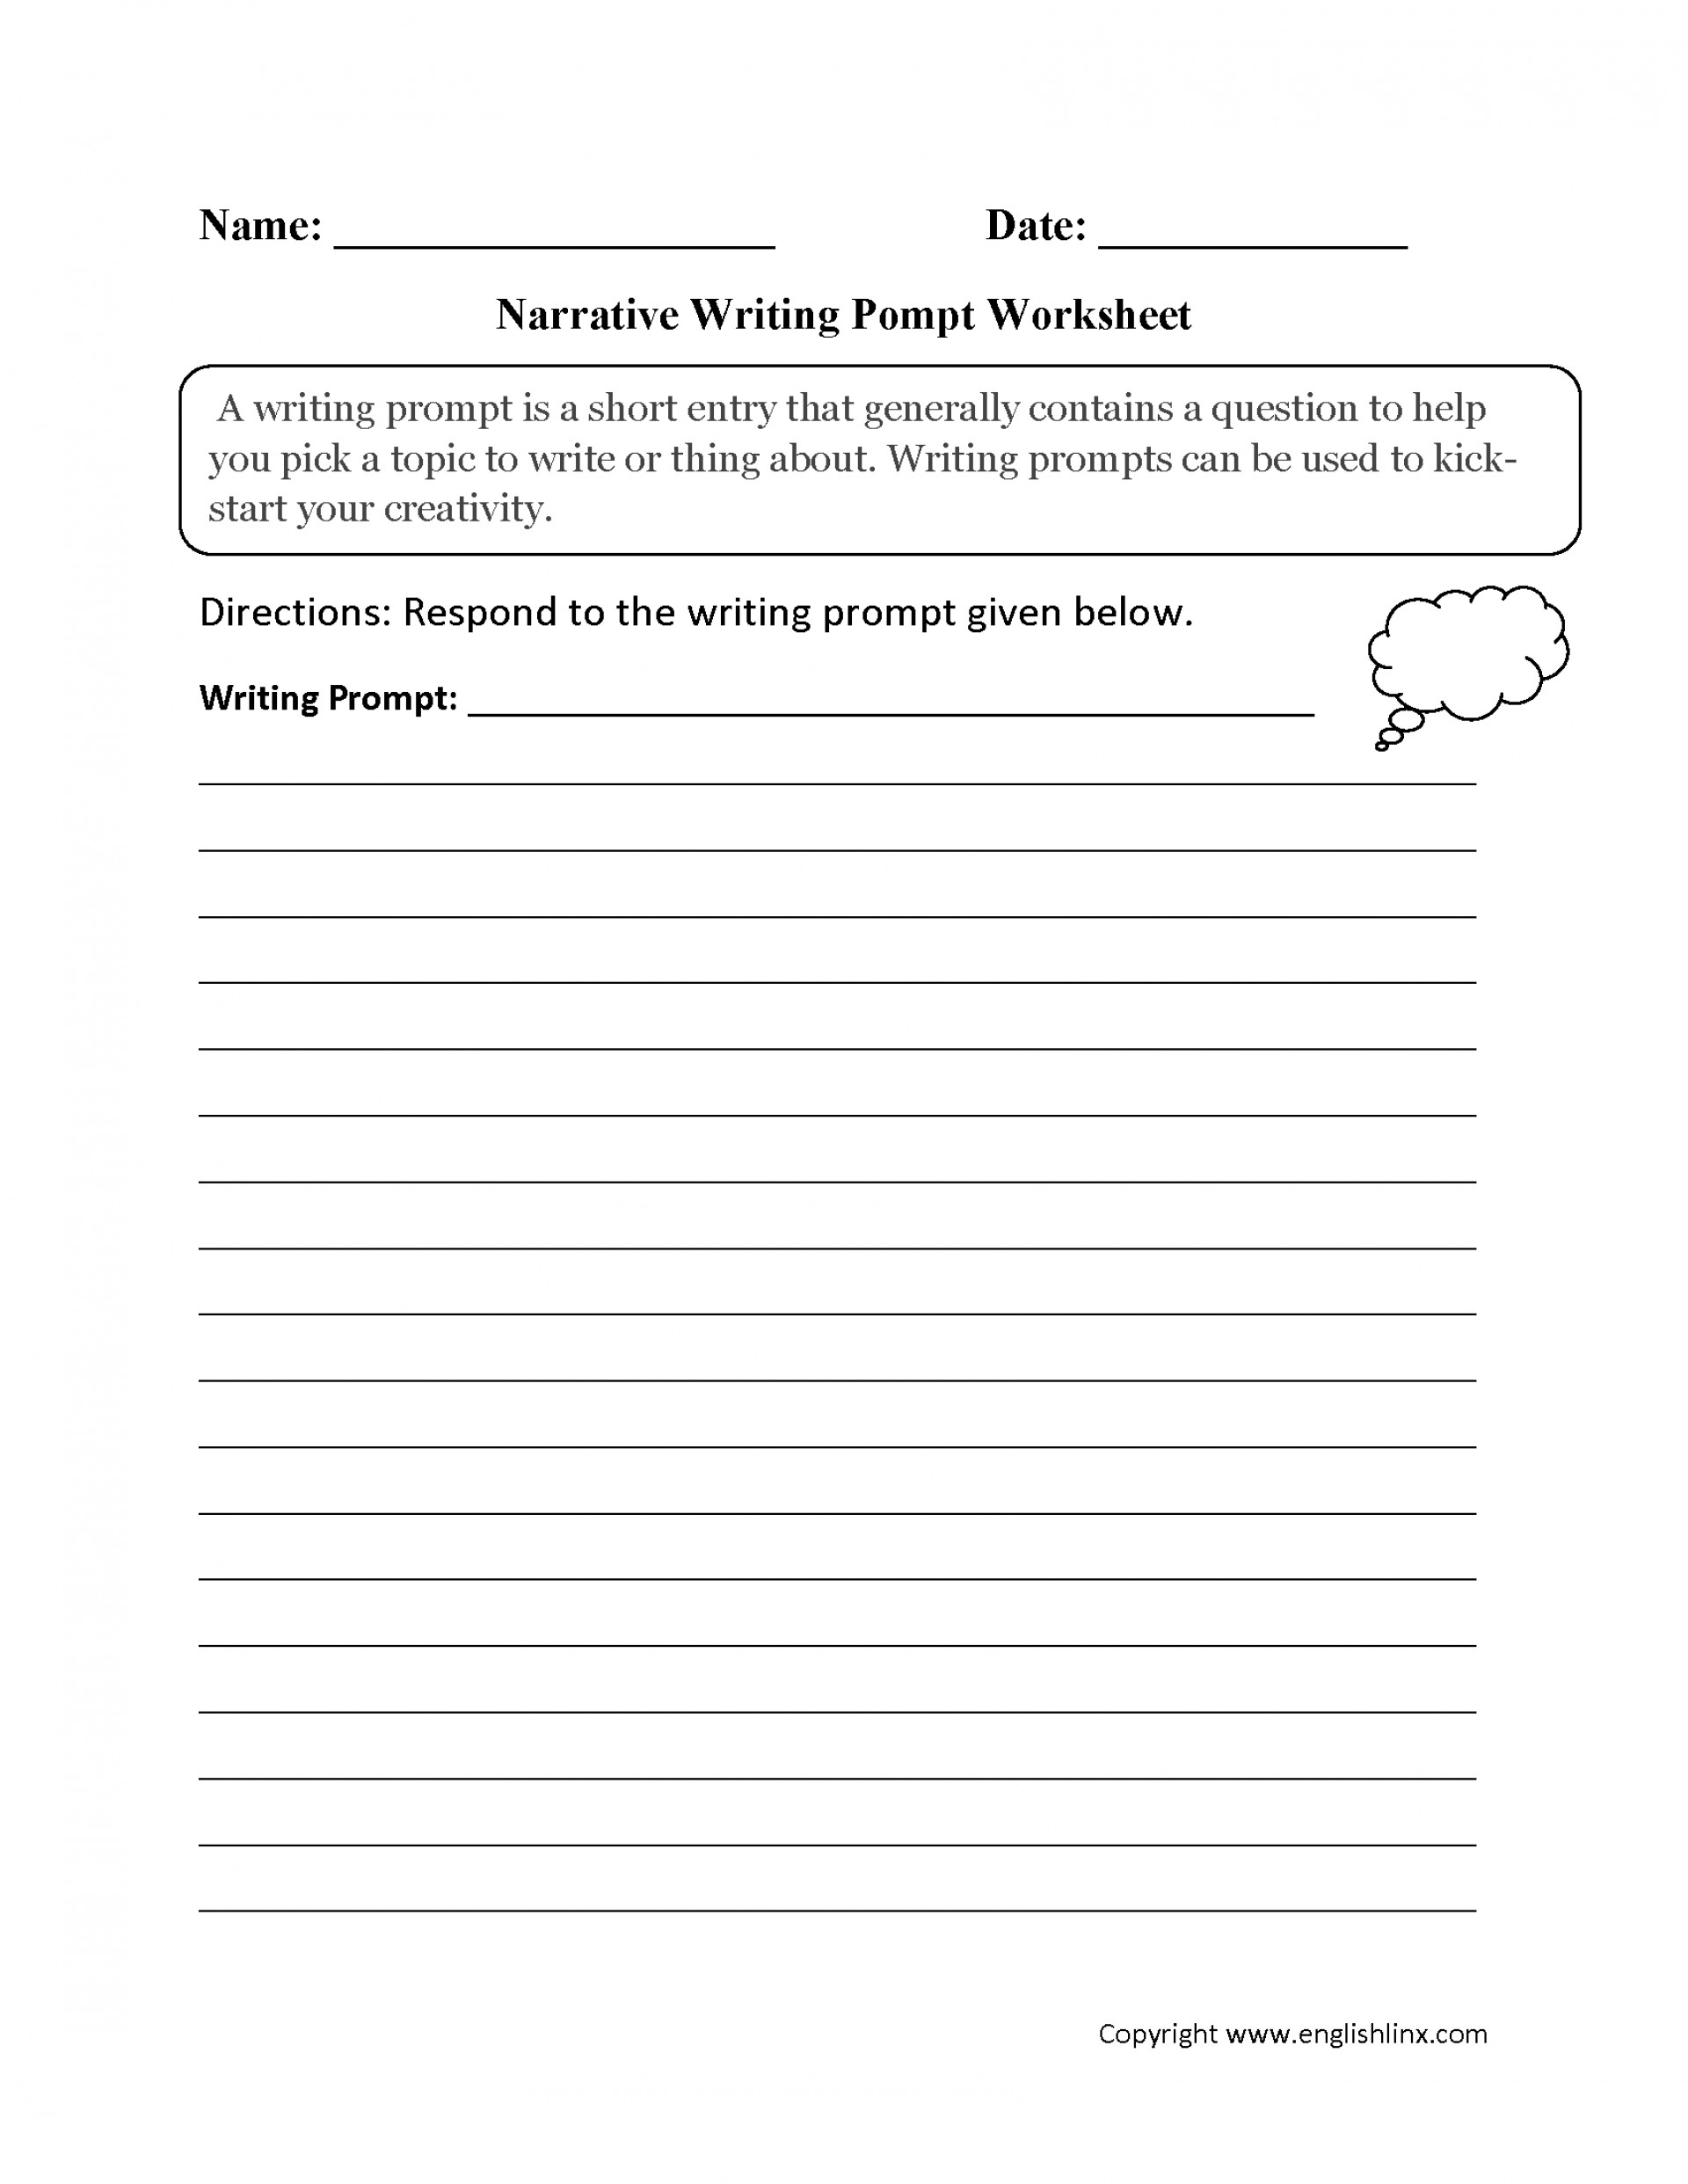 010 Essay Example Narrative Writing Prompt Prompts For Best Essays College Persuasive Opinion 4th Grade 1920